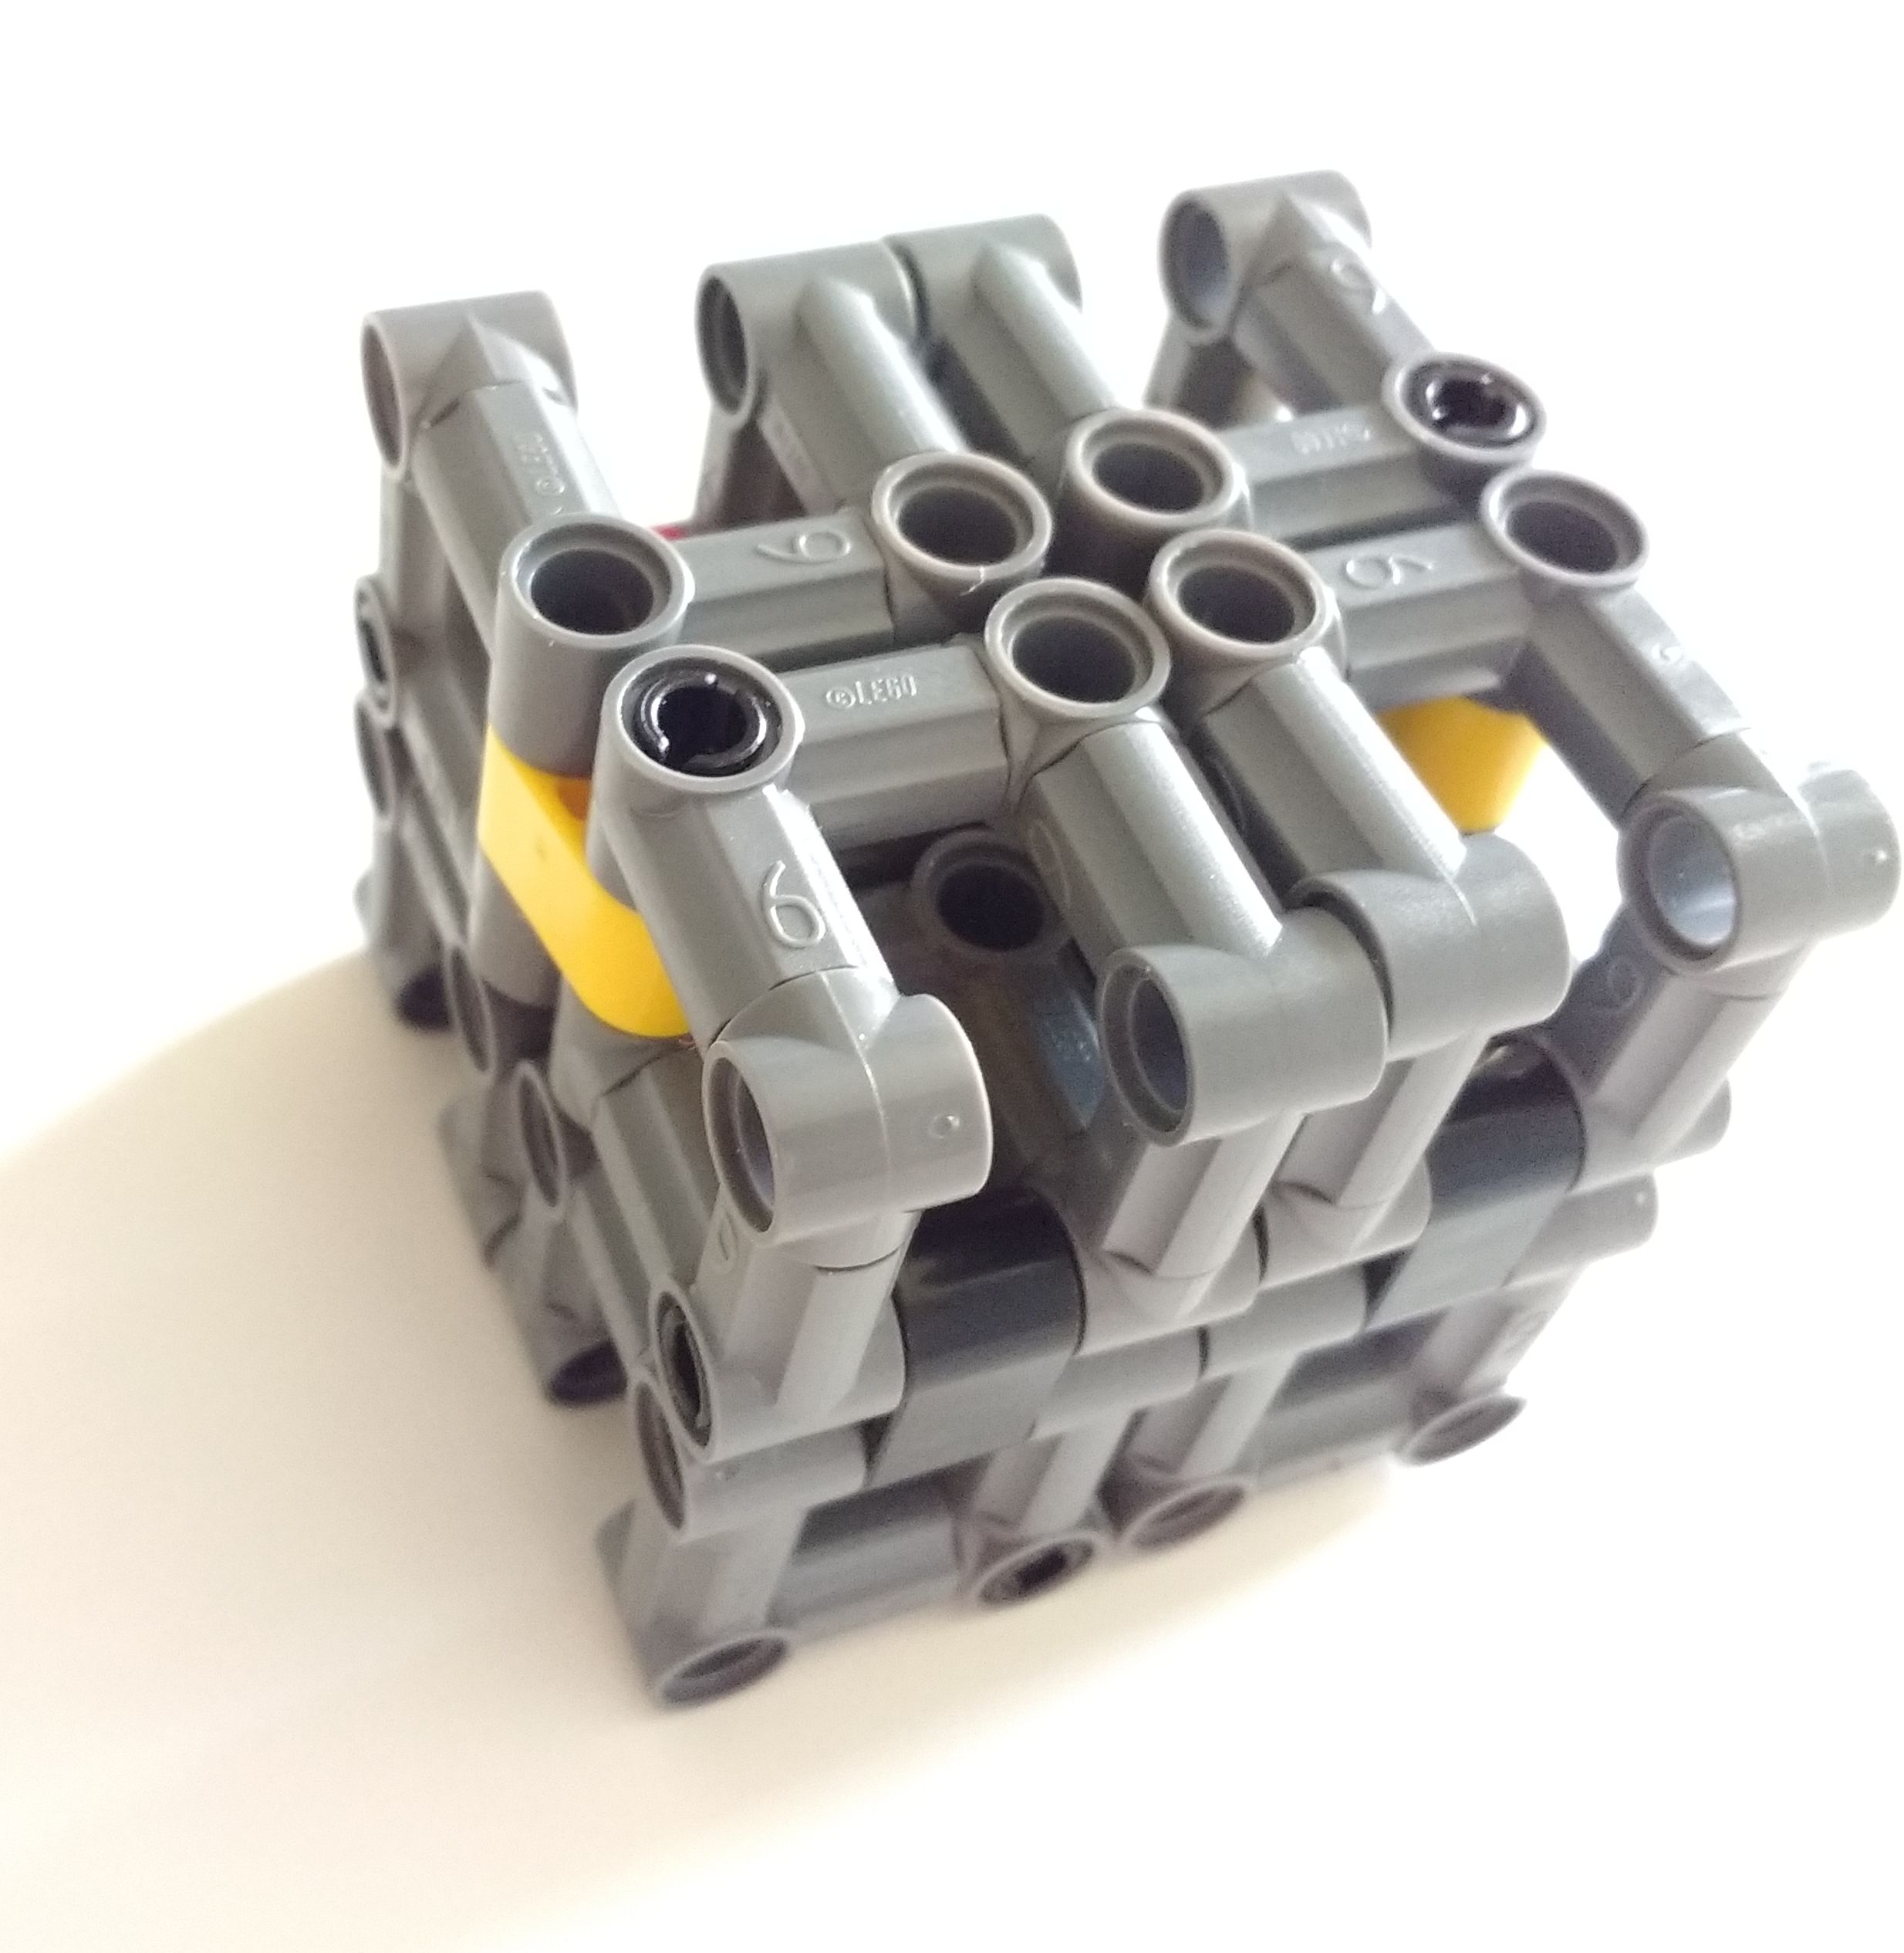 lego folding cube instructions